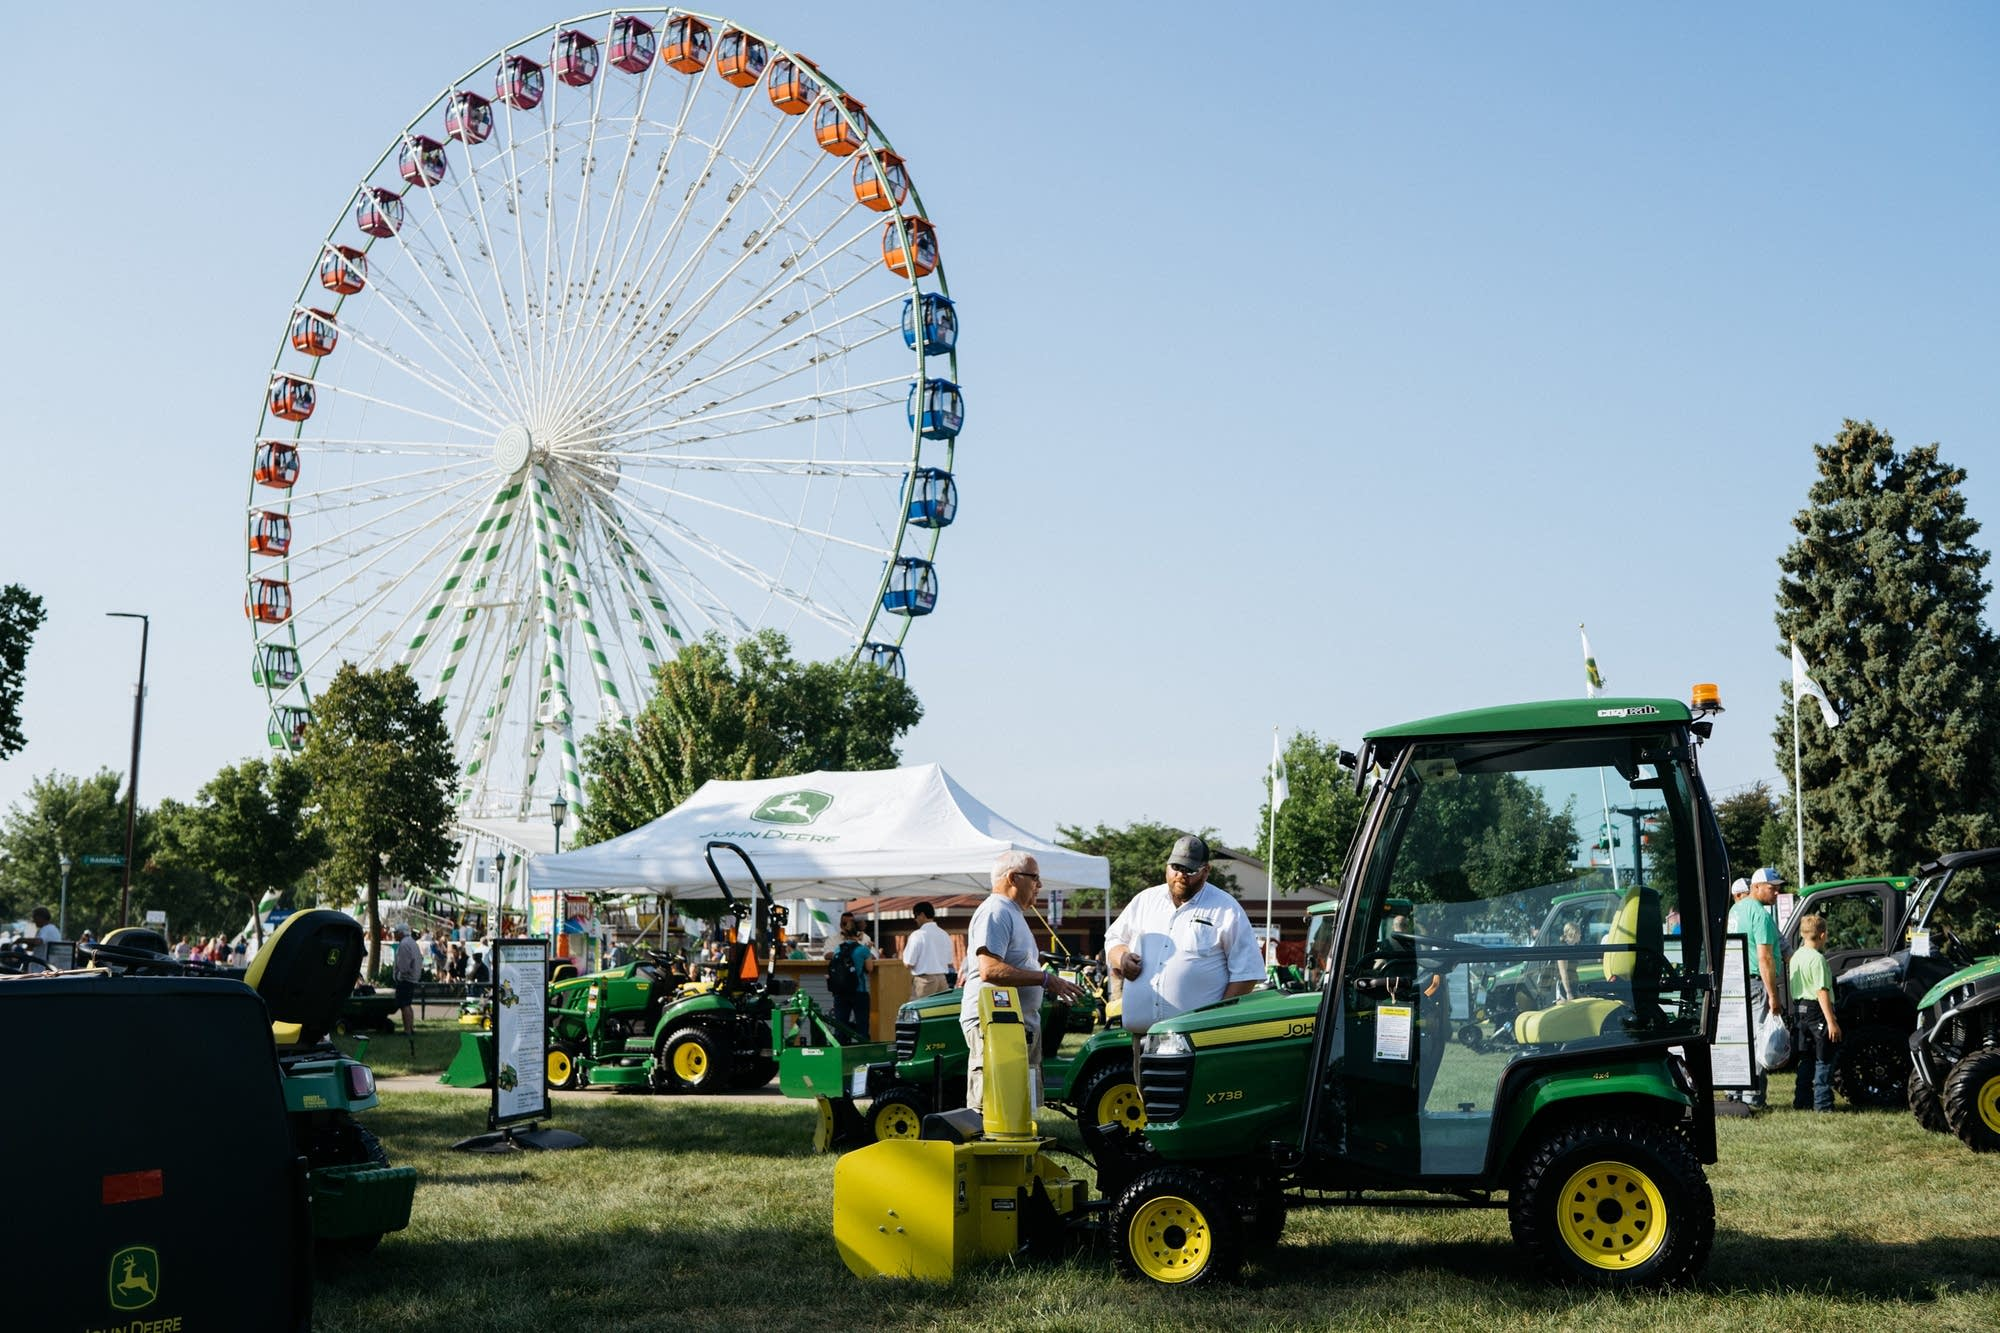 A ferris wheel turns as people check out John Deere tractors.